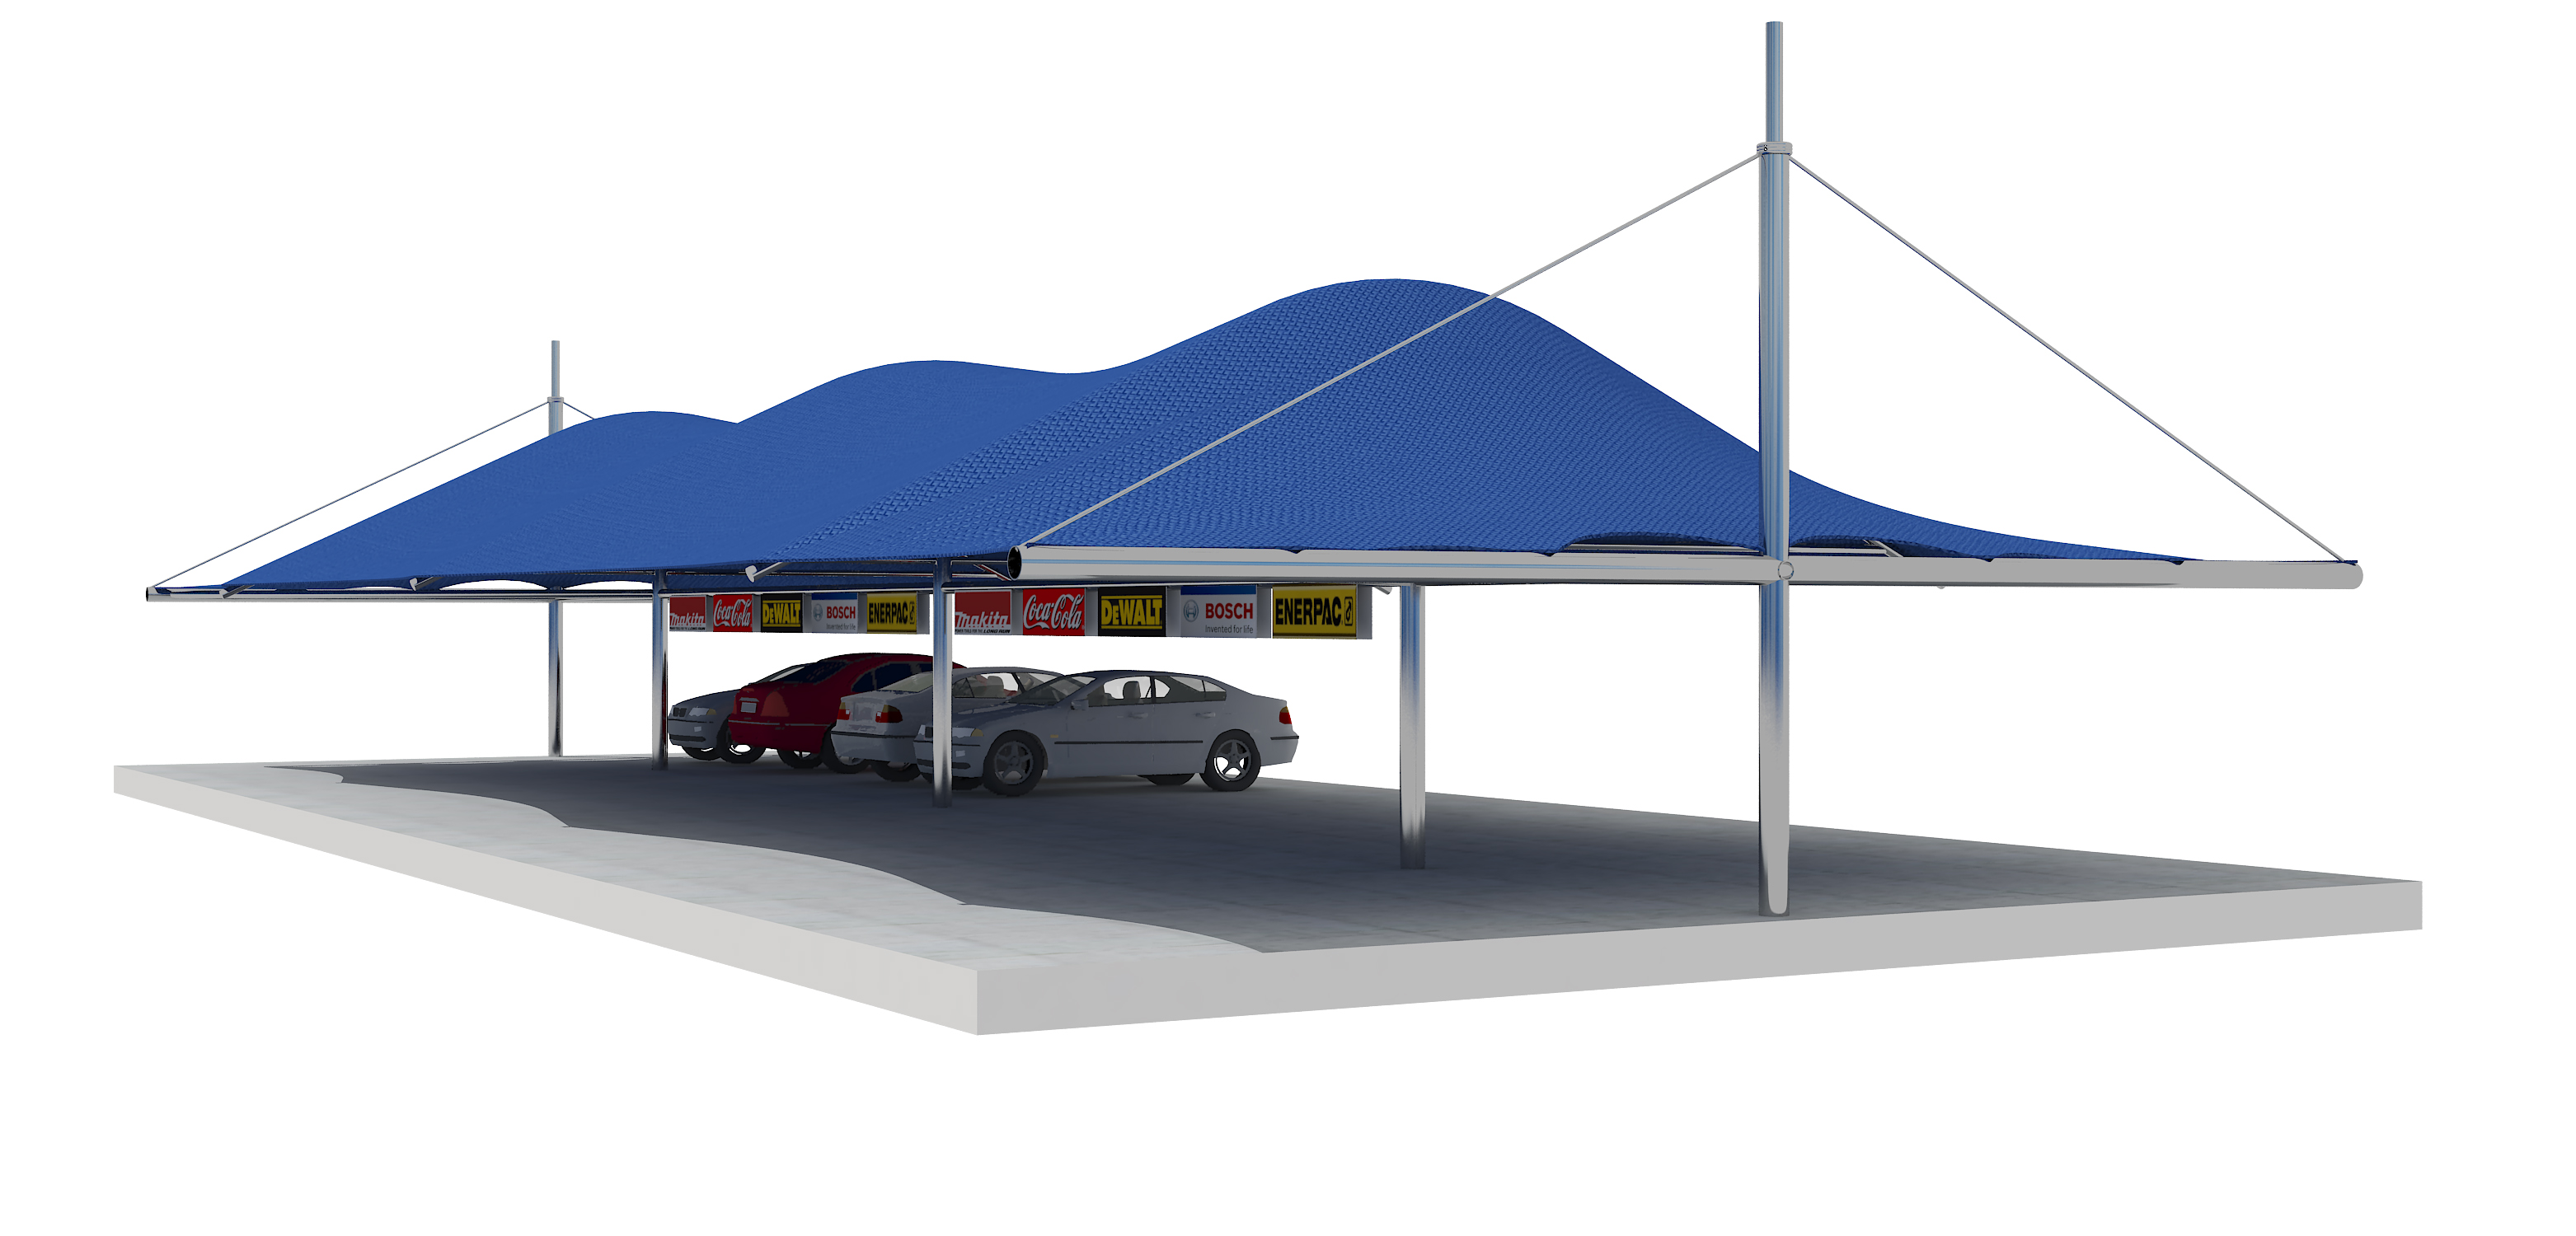 Car shed free 3d model max cgtrader for Car shed design